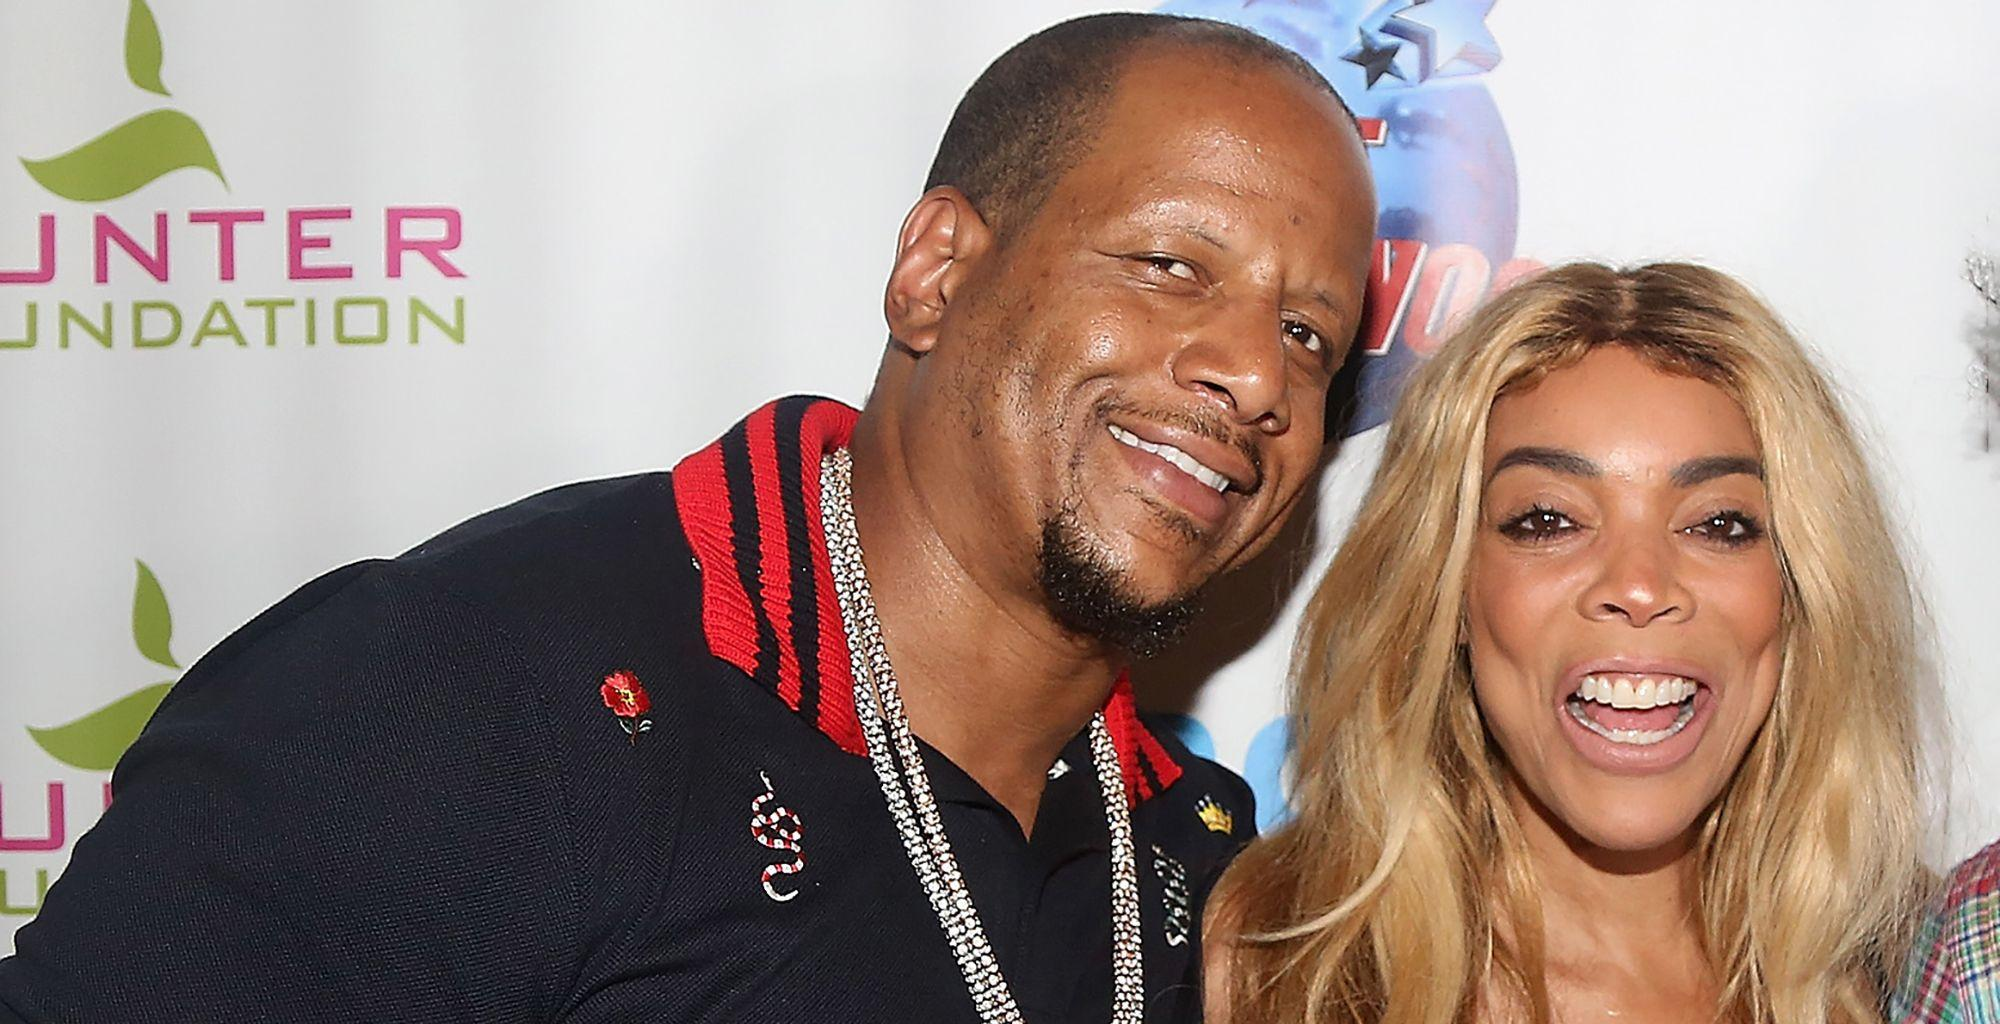 Wendy Williams' Ex, Kevin Hunter, Triggers Massive Criticism Following His Birthday Posts